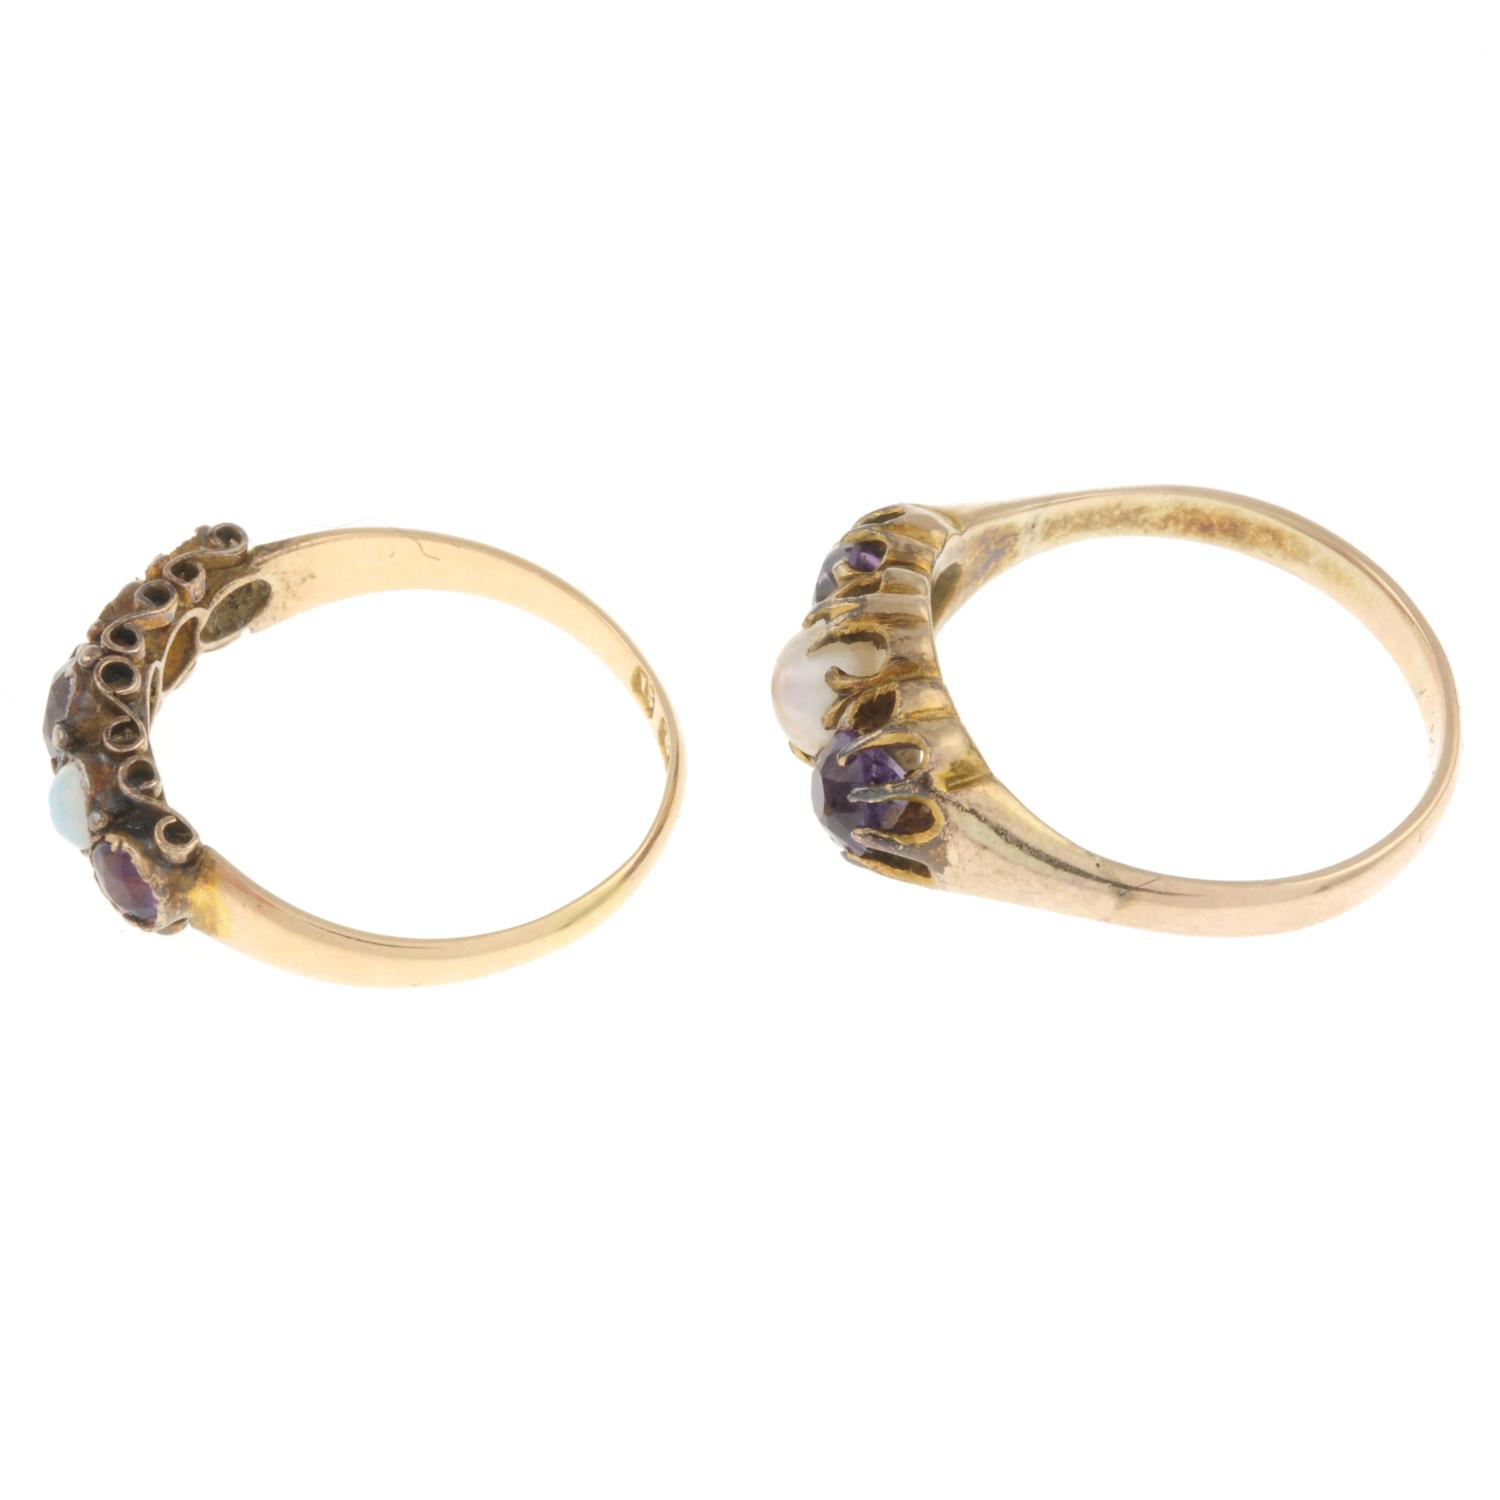 An 15ct gold amethyst and opal ring and an amethyst and cultured pearl ring. - Image 2 of 3